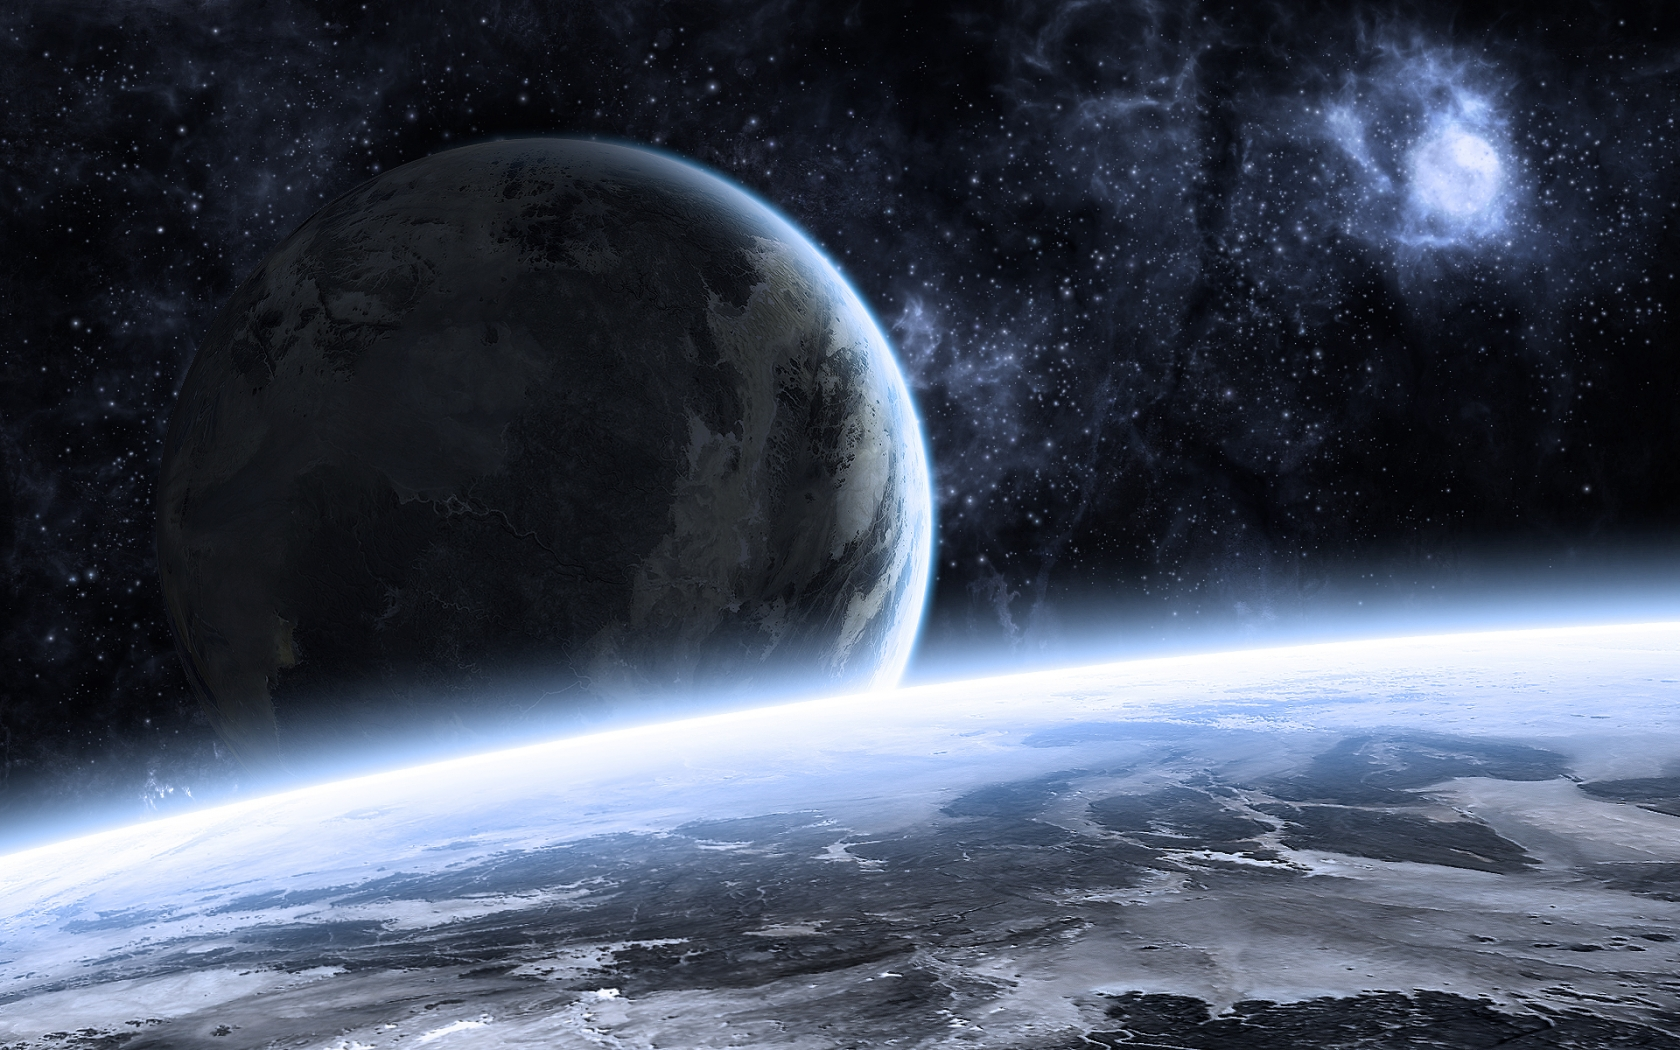 Beautiful Space Landscape for 1680 x 1050 widescreen resolution